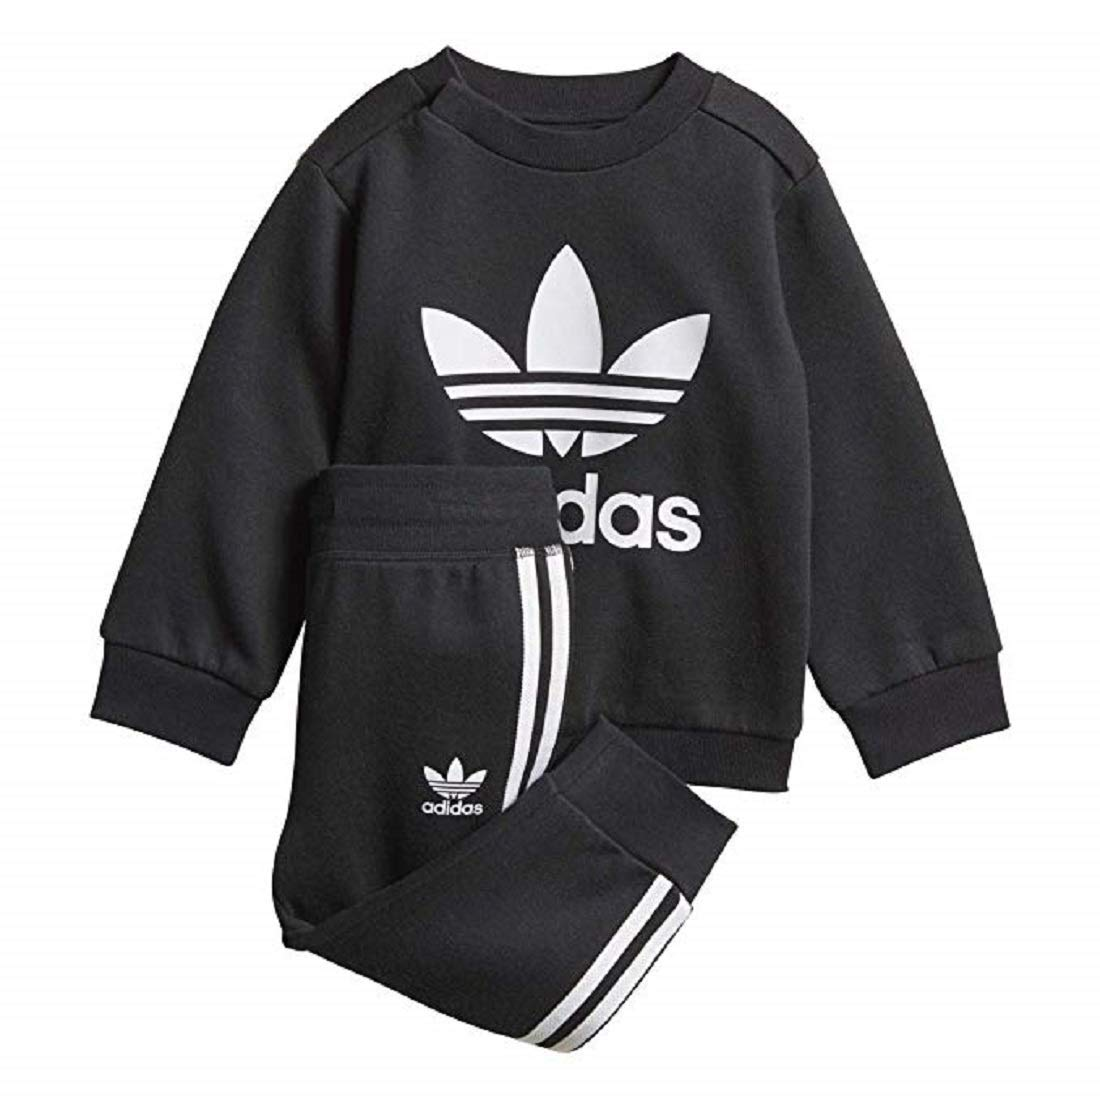 adidas Originals Infant Trefoil Fleece Set (18M) Black/White by adidas Originals